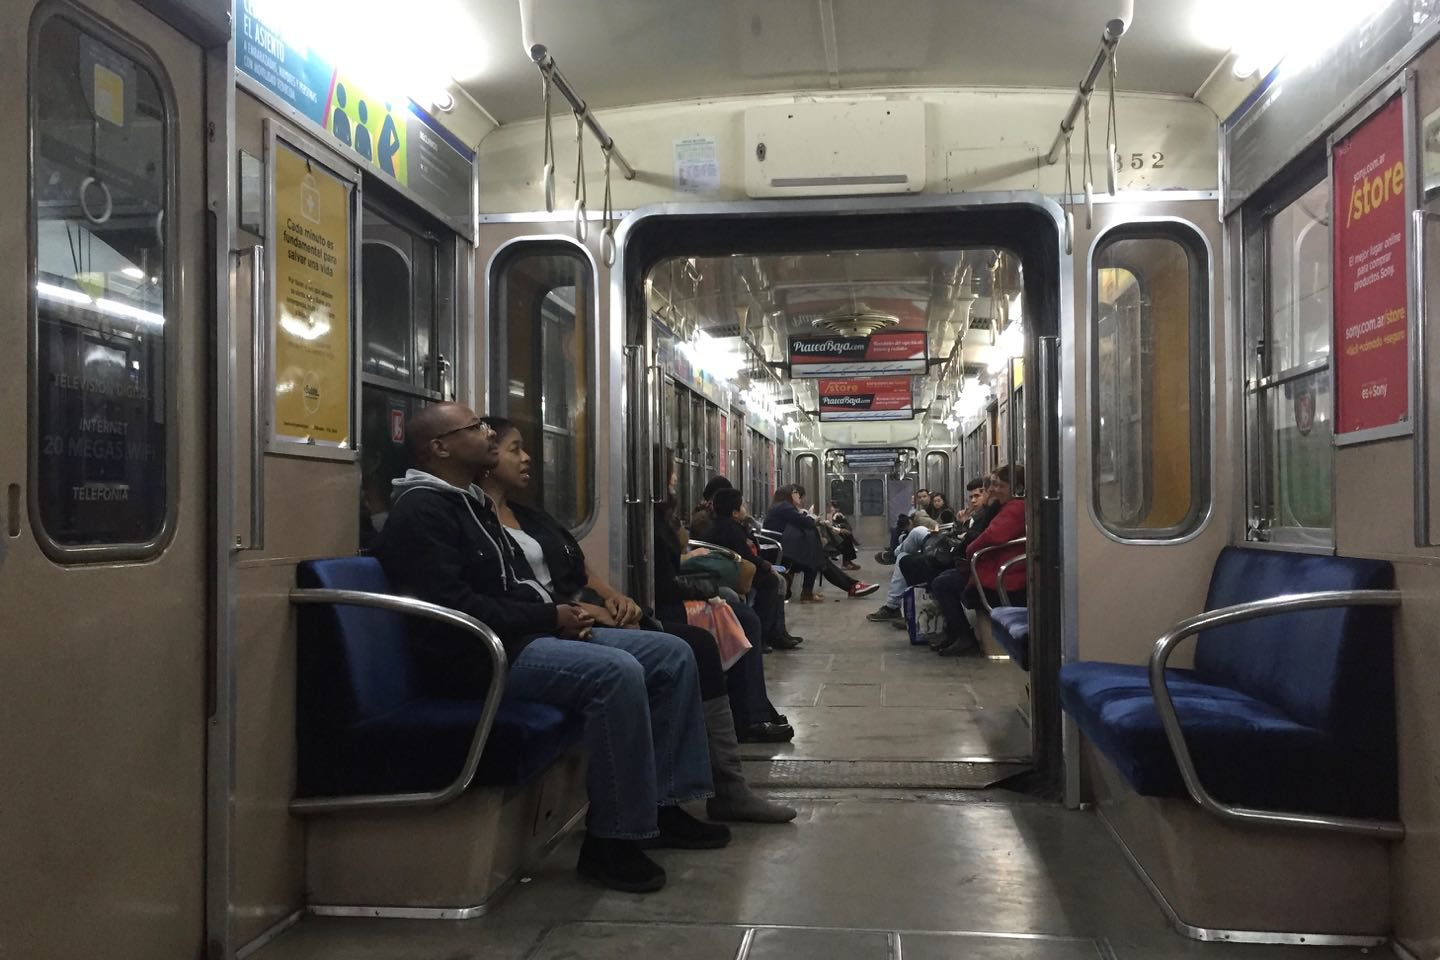 Transportation in Buenos Aires. Subways are easy to use but not always this empty.